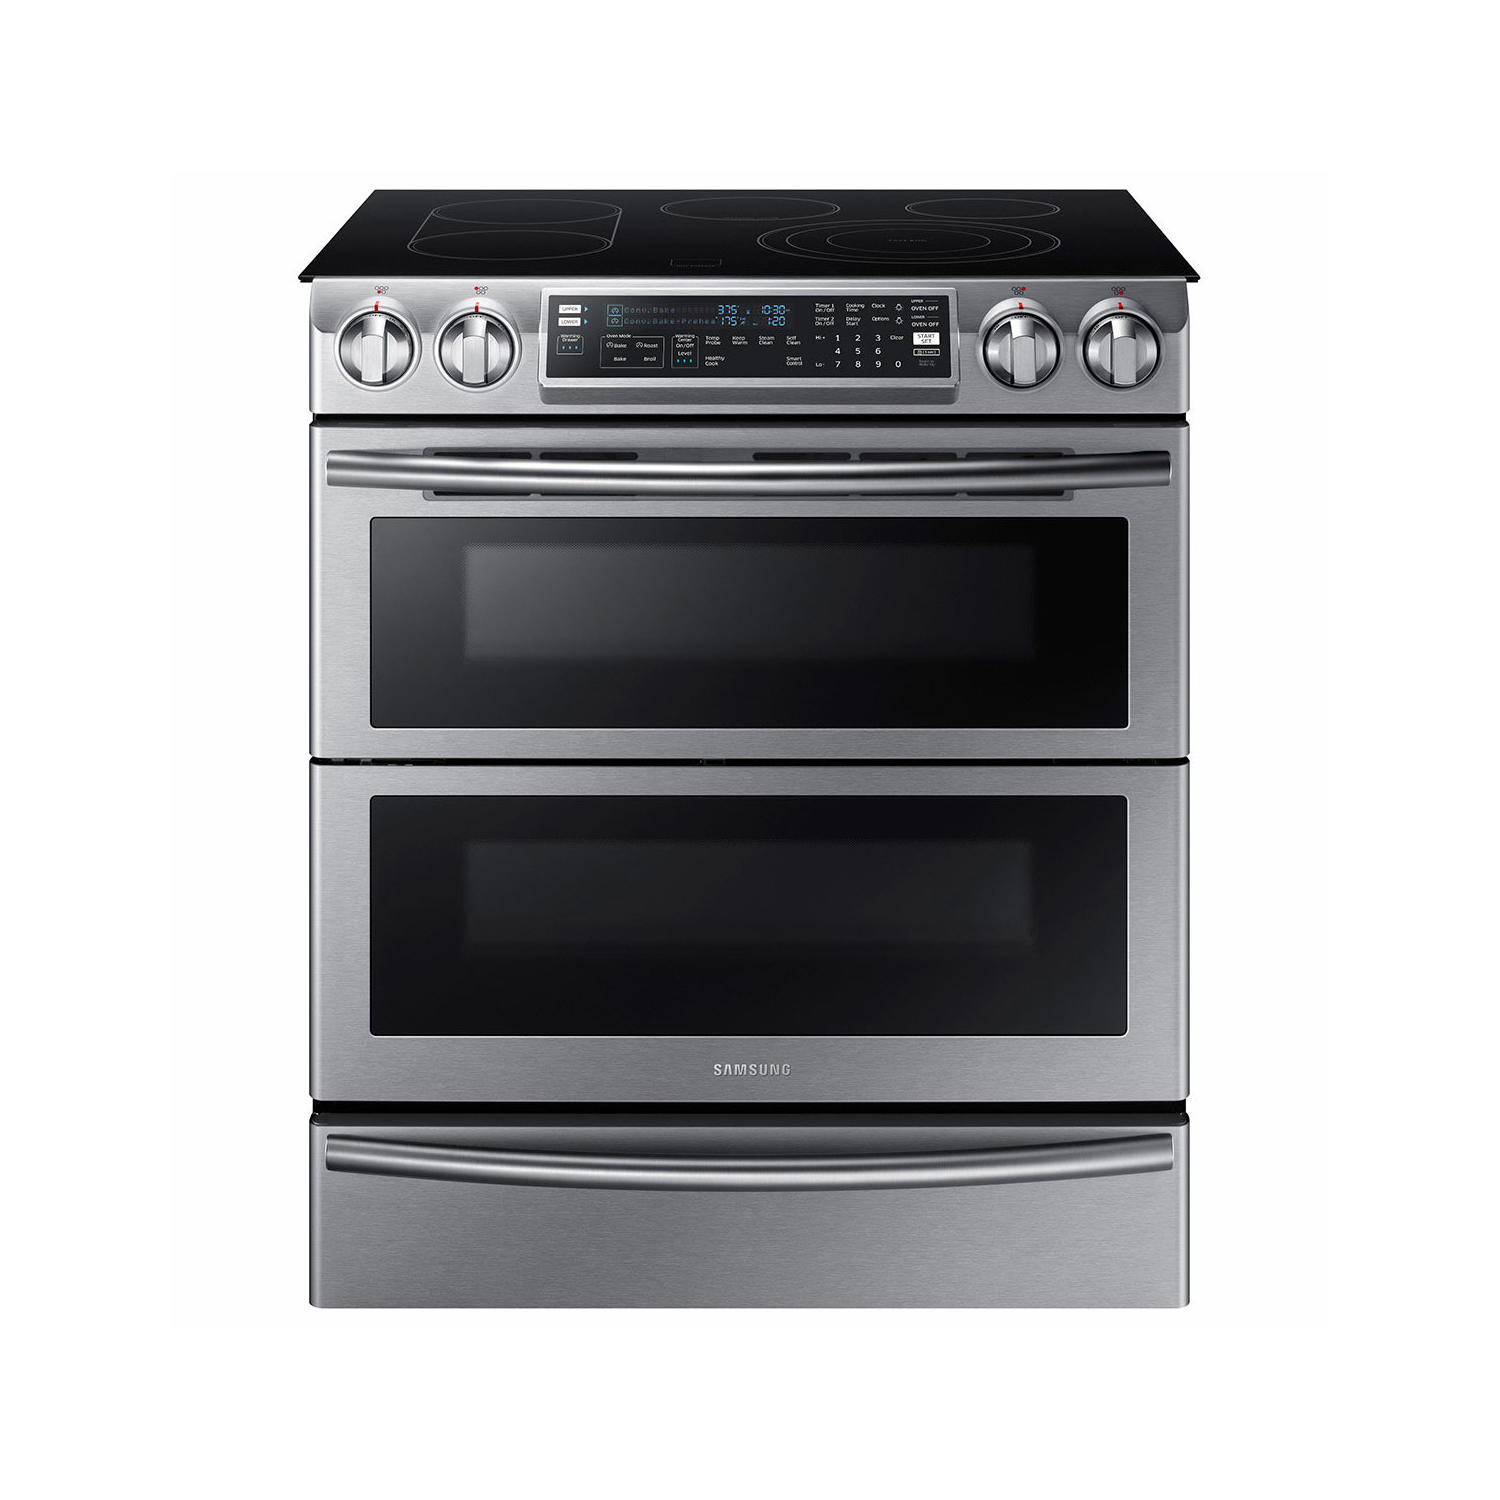 Samsung 5.8 Cu. Ft. Slide-In Electric Range With Flex Duo